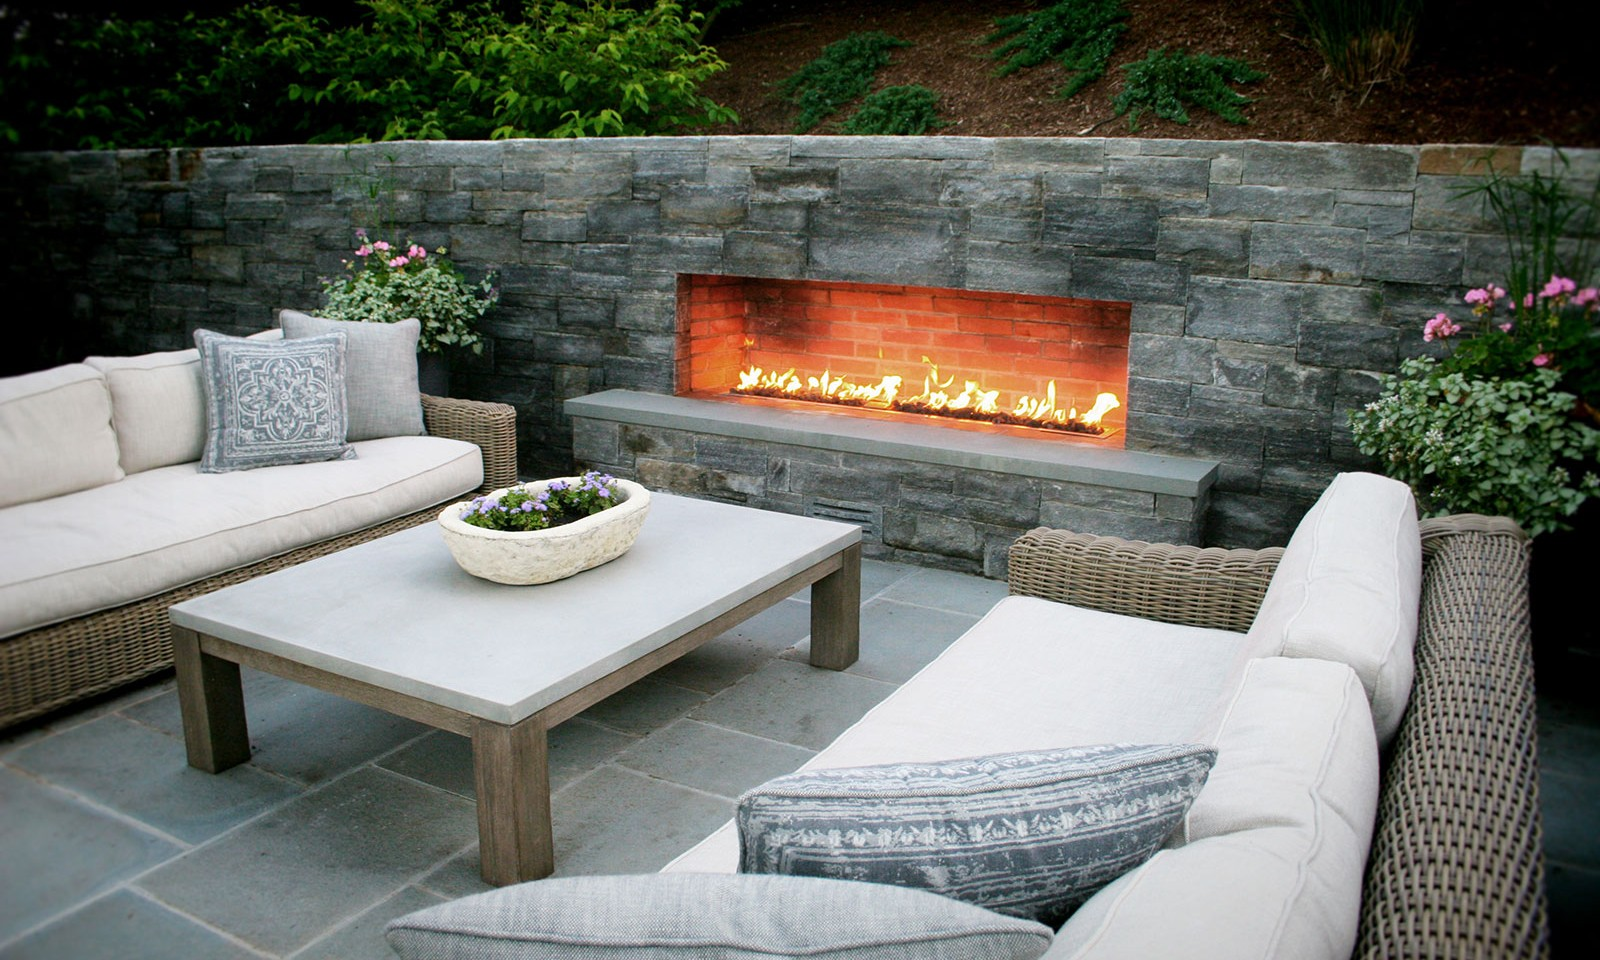 Outdoor Fireplace Kits: The Perfect Addition To Your Patio on Backyard Outdoor Fireplace id=80159